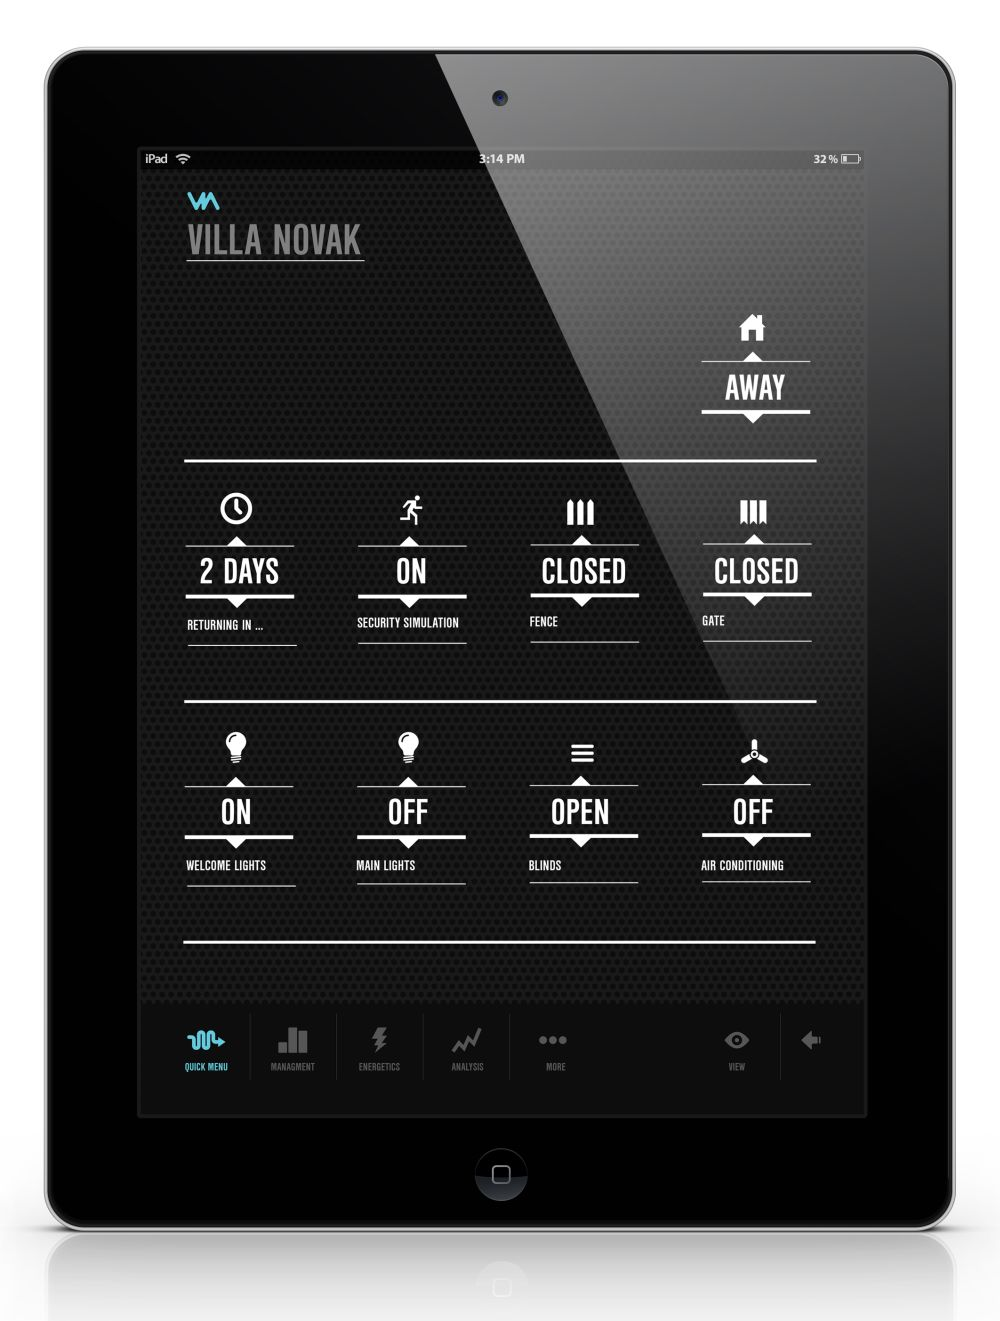 VIA menu display on iPad